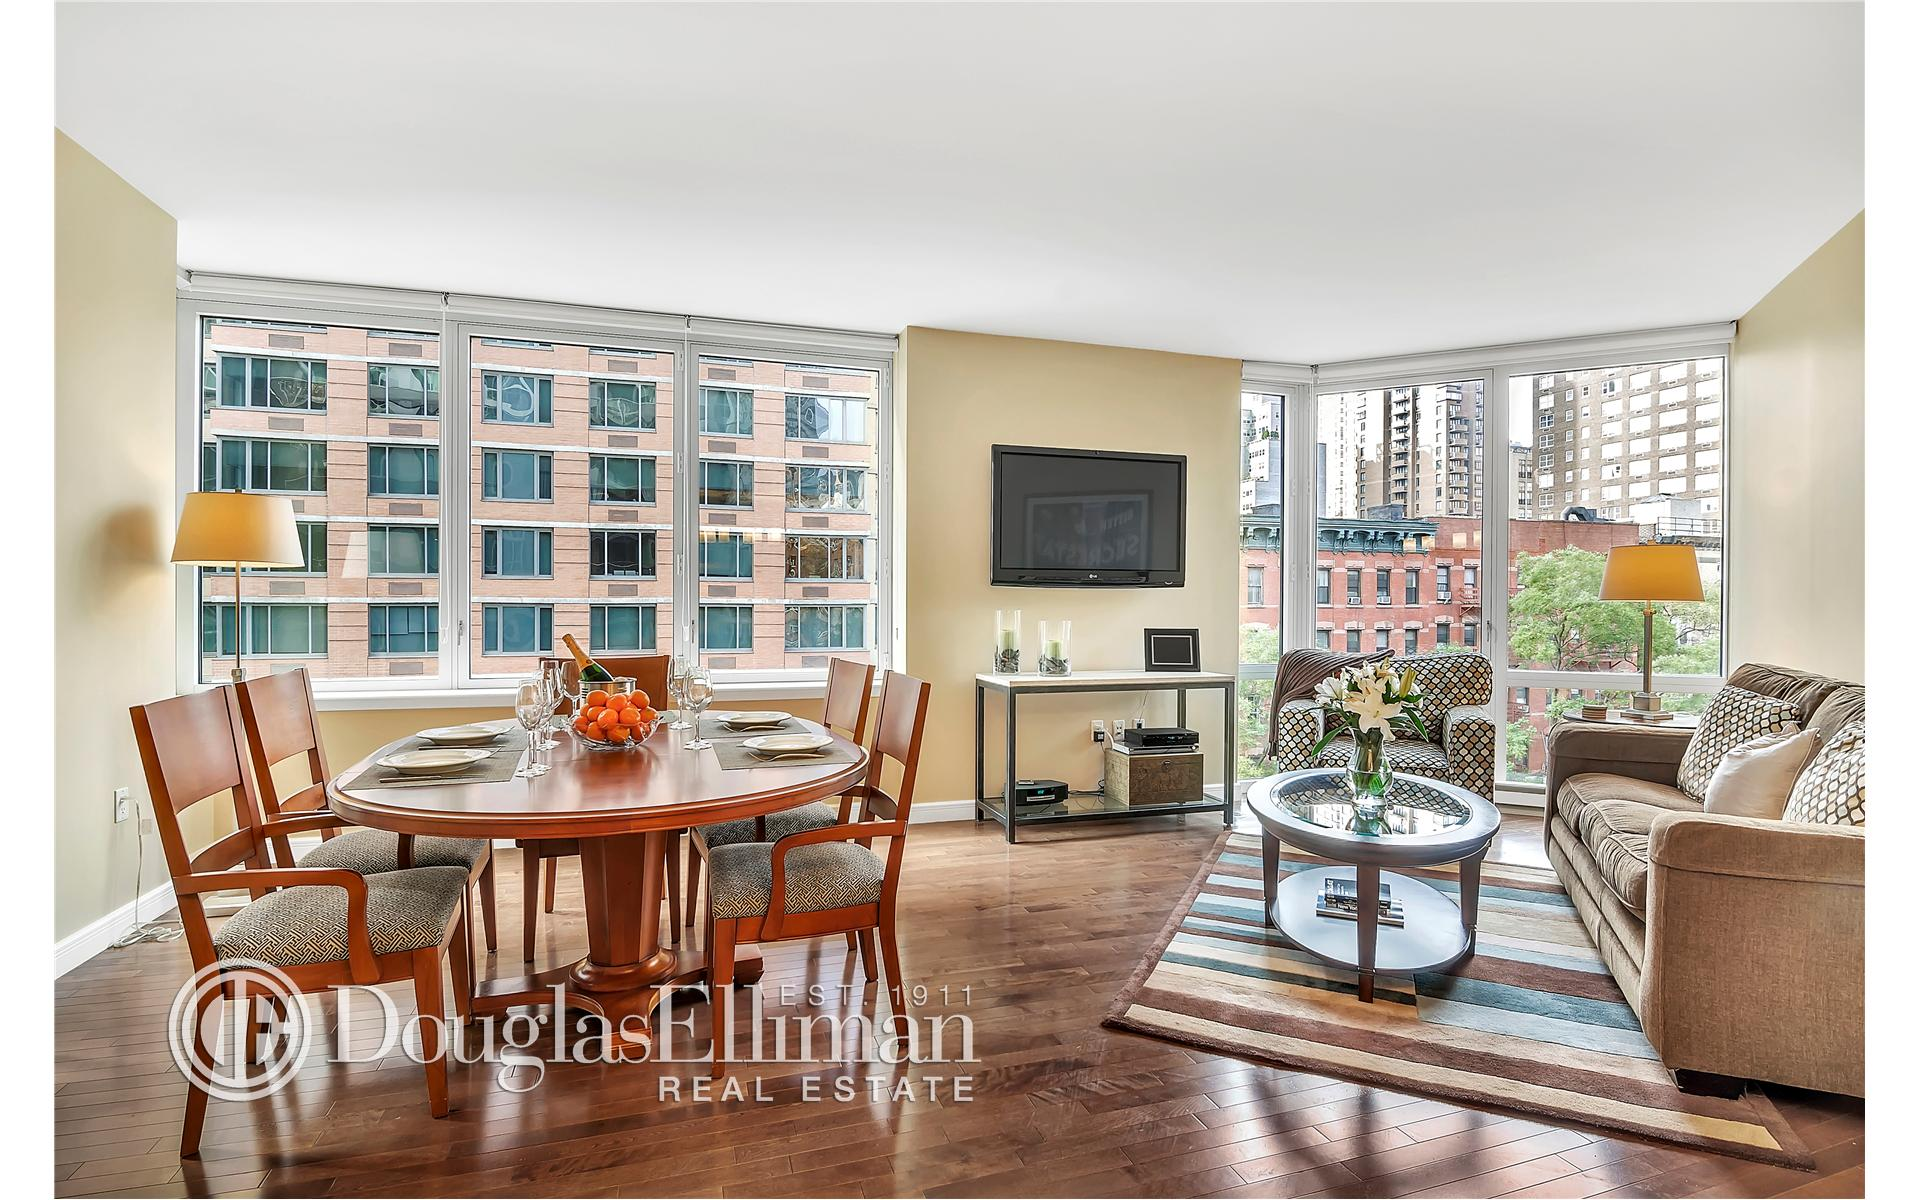 Condominium for Sale at The Charleston, The Charleston, 225 East 34th Street New York, New York 10016 United States